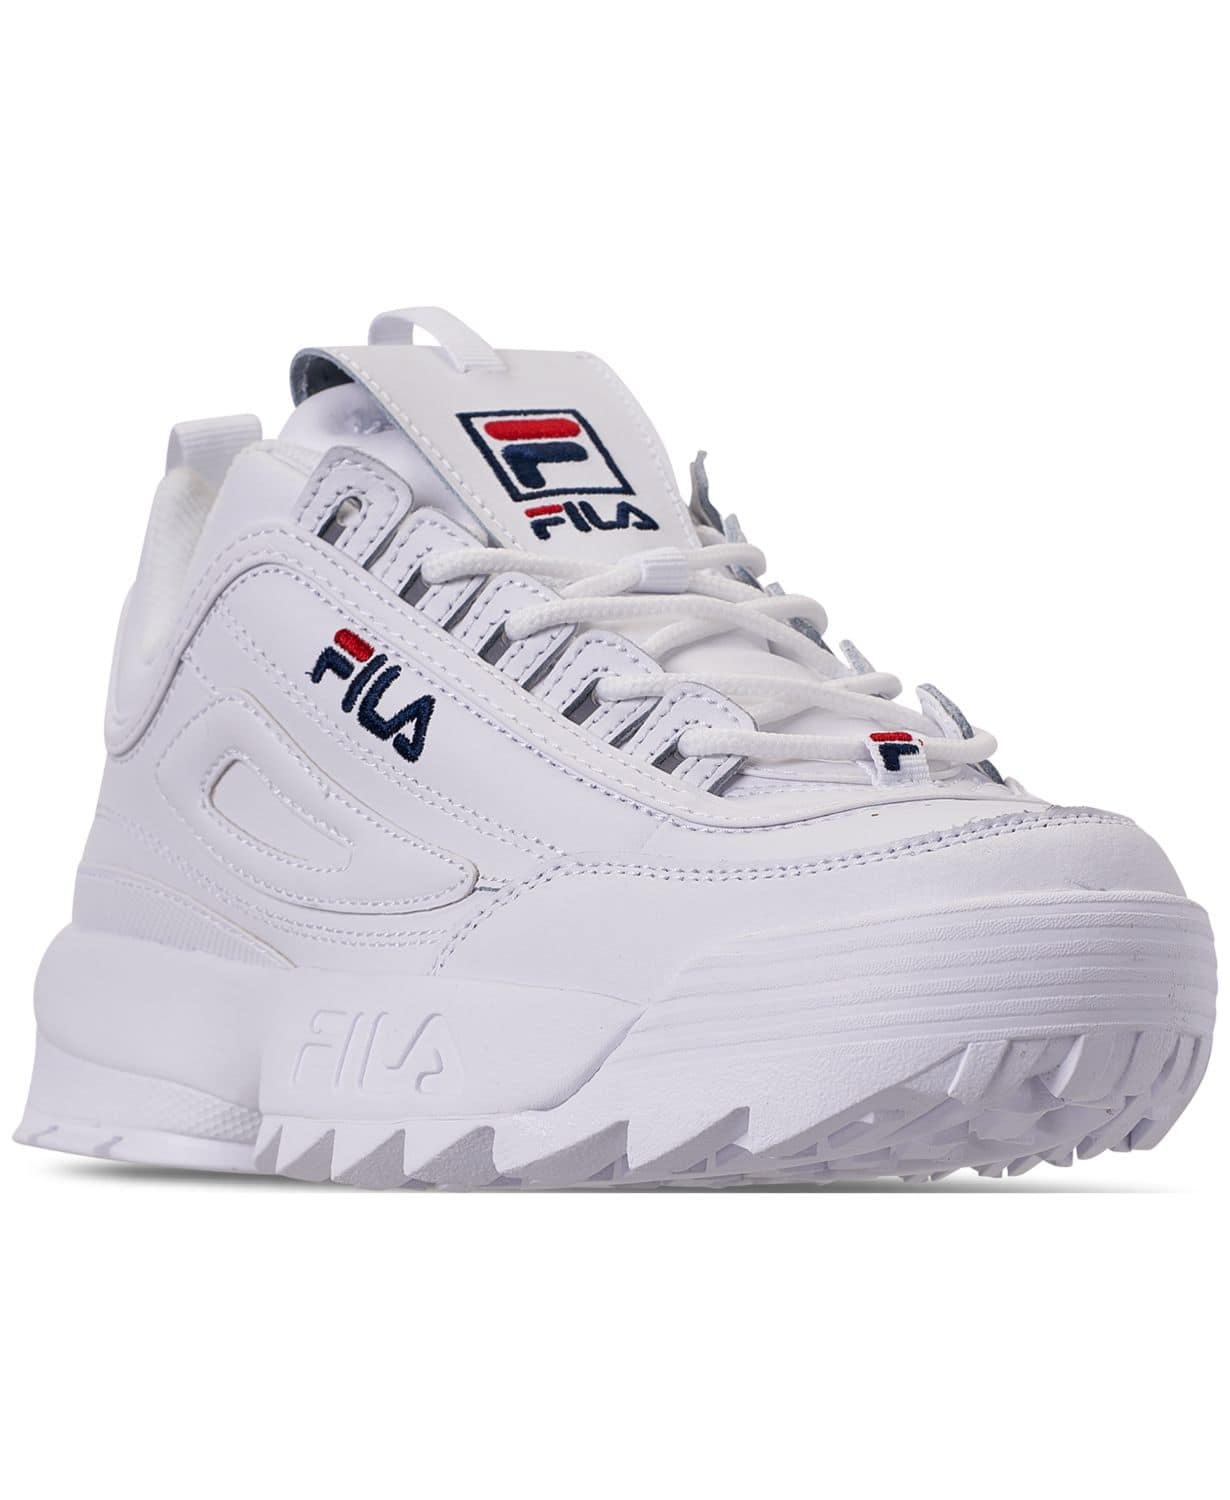 FILA Men's Disruptor II Casual Athletic Sneakers from Finish Line - $30